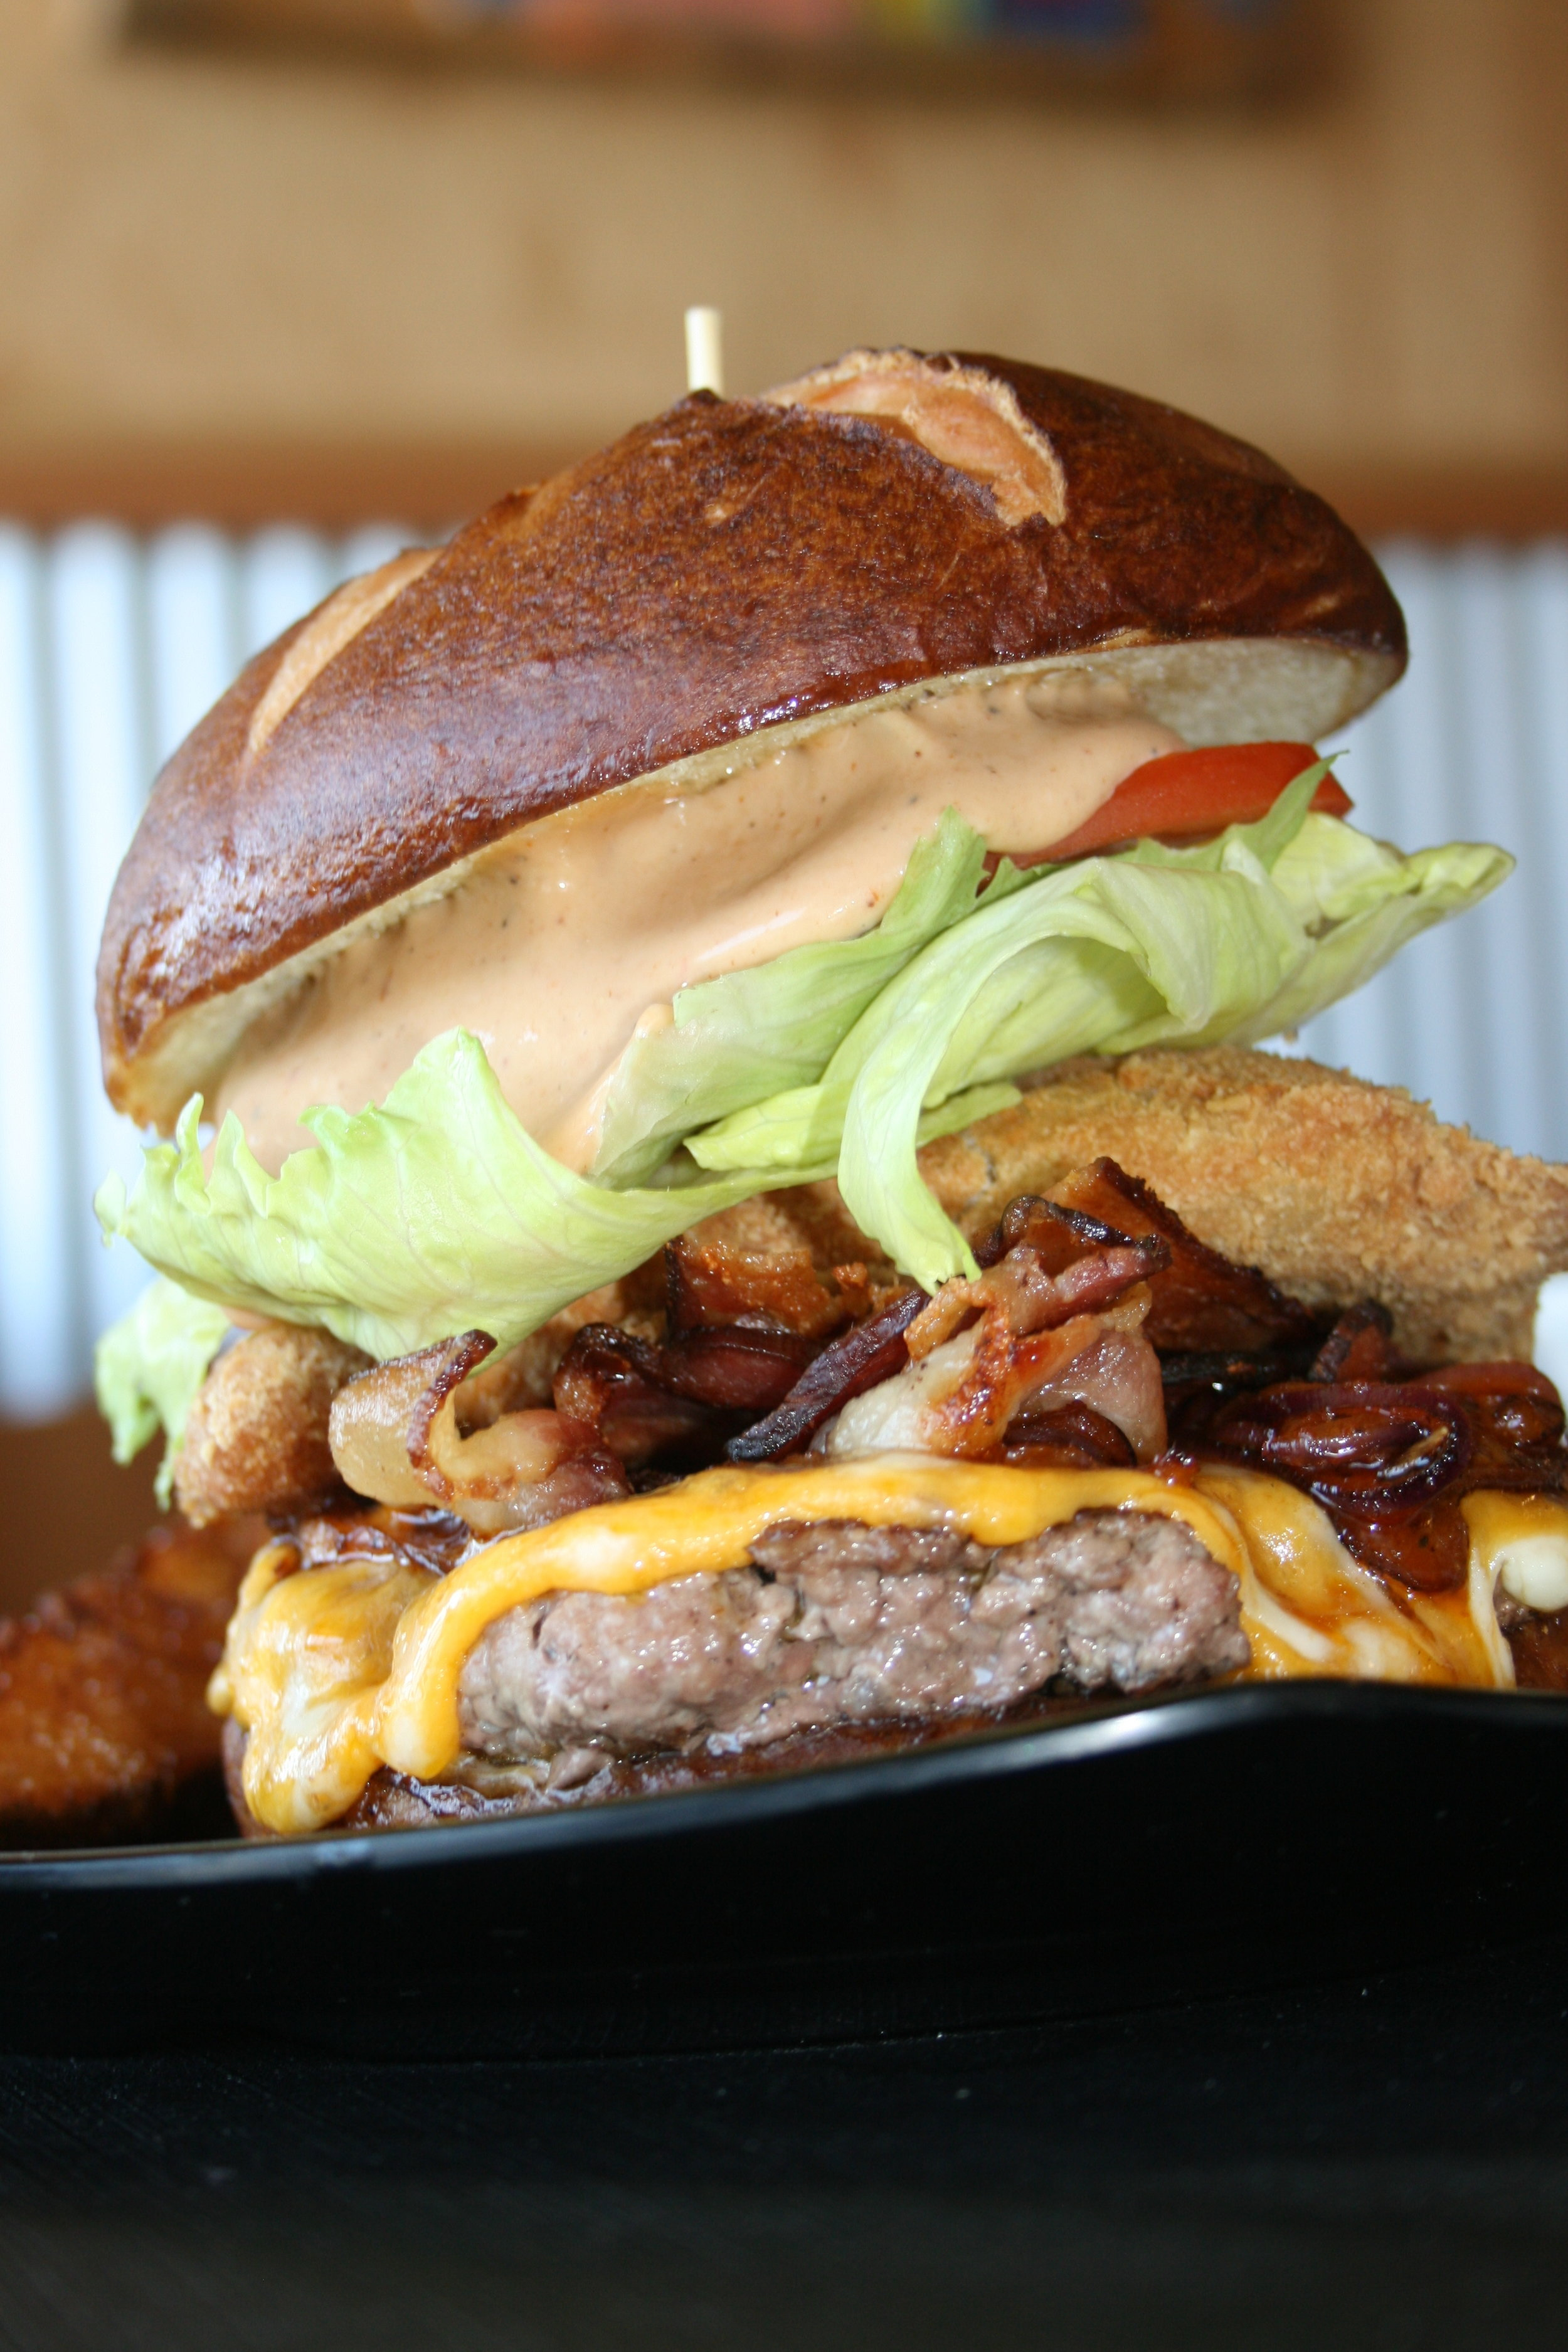 MODERATION IS KEY   Don't deprive yourself, but do take good care of your gut. Make room for a burger (like this behemoth at Flavor Factory in Morro Bay) on occasion, and enjoy every mouthful.